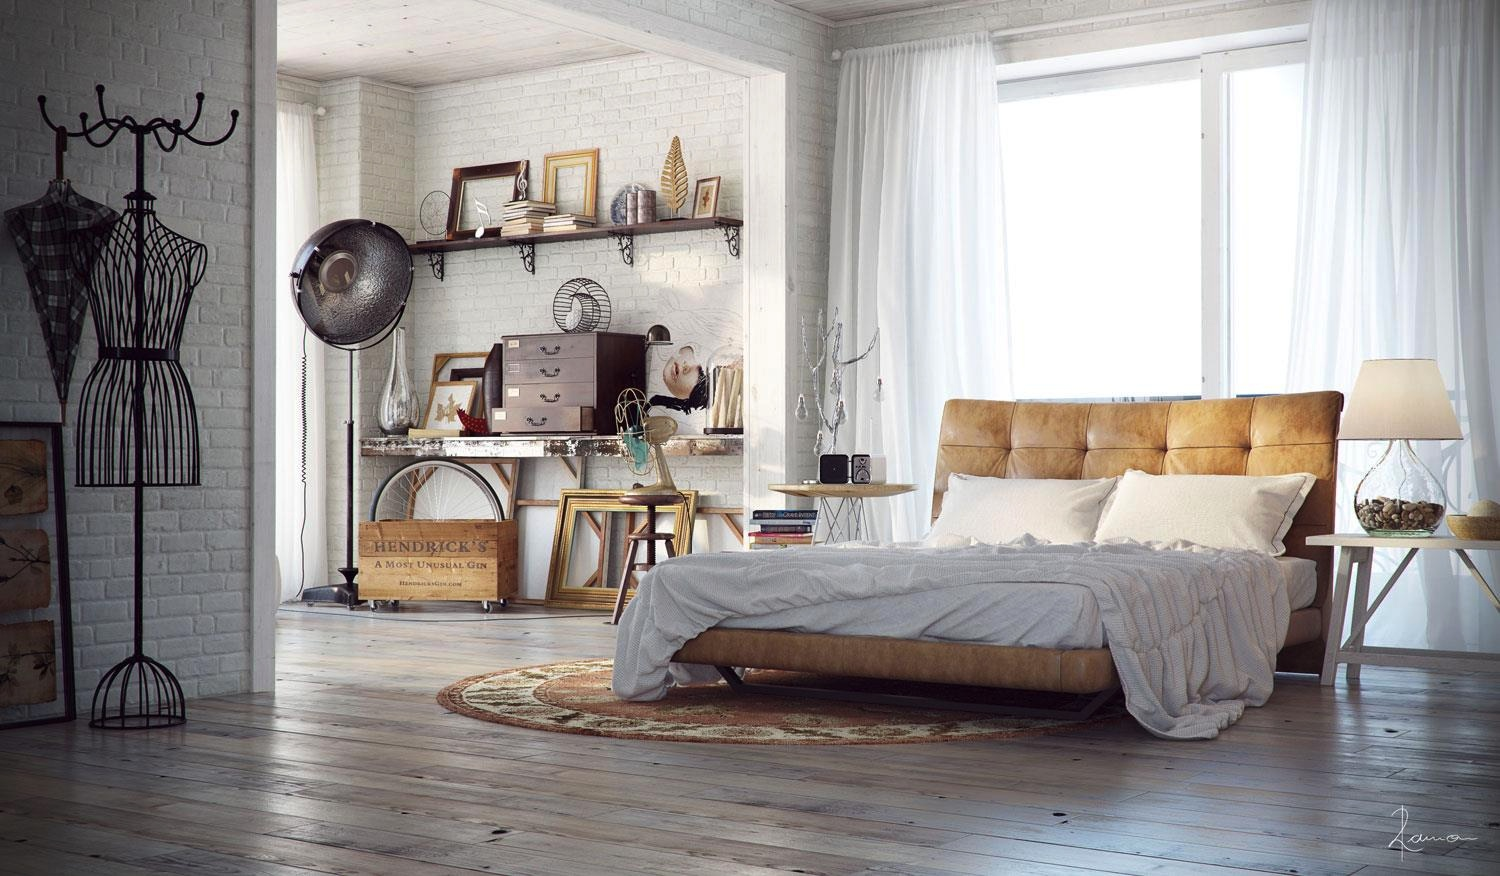 Industrial bedrooms interior design interior design for Industrial interior designs